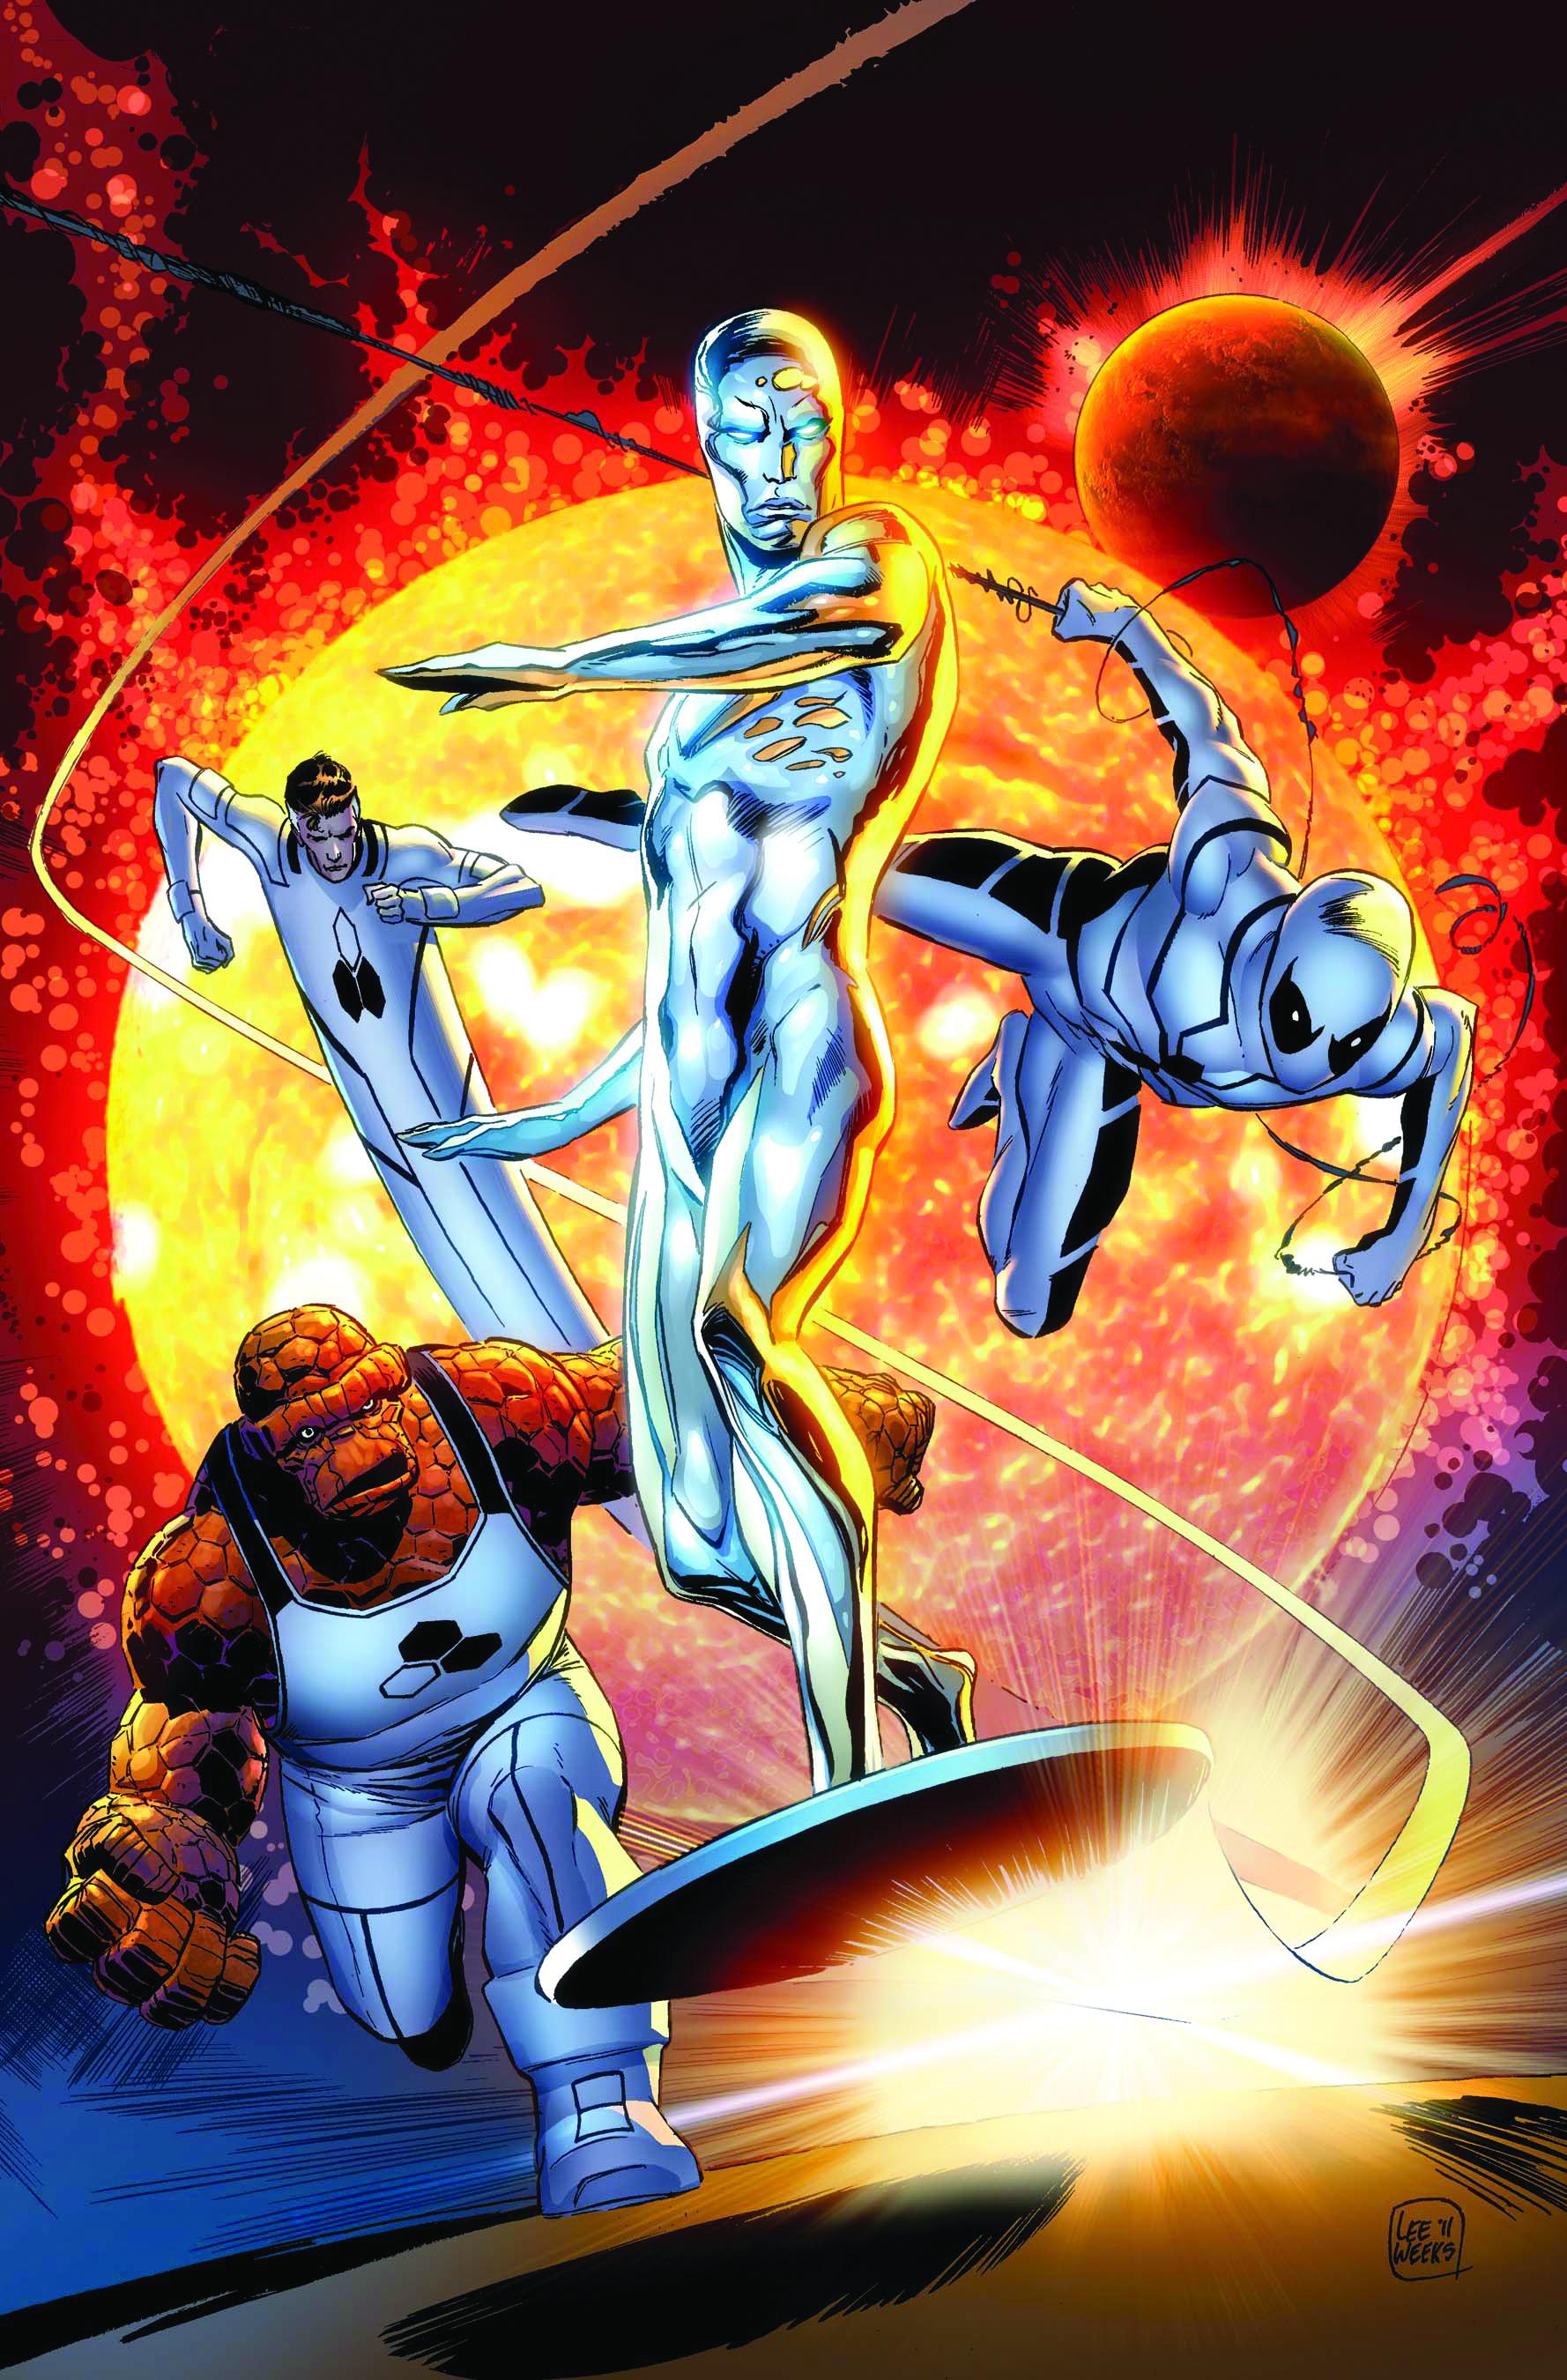 SILVER SURFER #4 (OF 5)